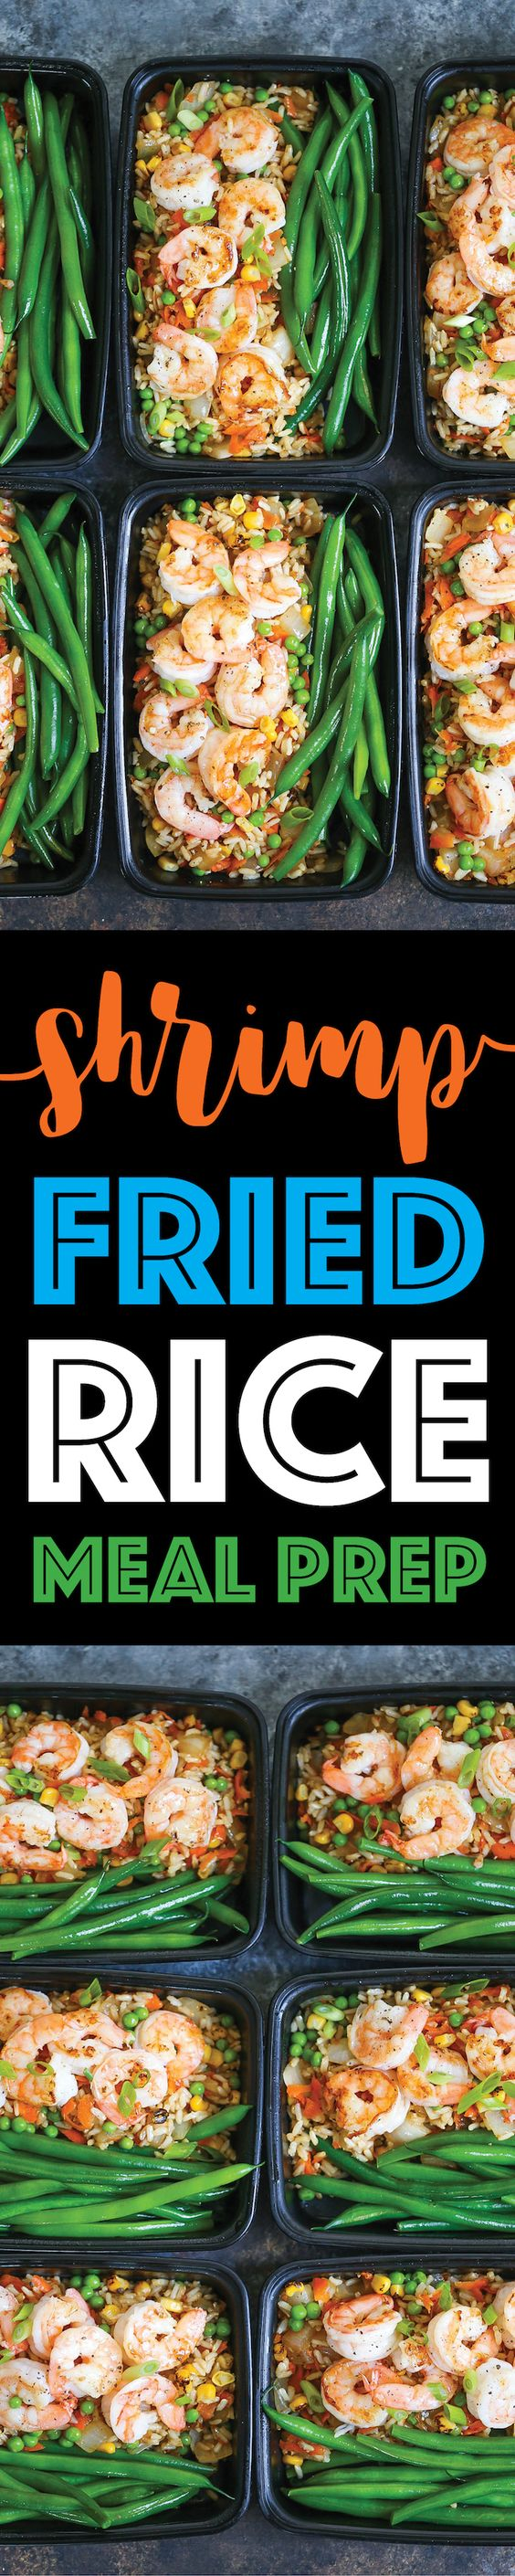 Shrimp Fried Rice Meal Prep by Damn Delicious